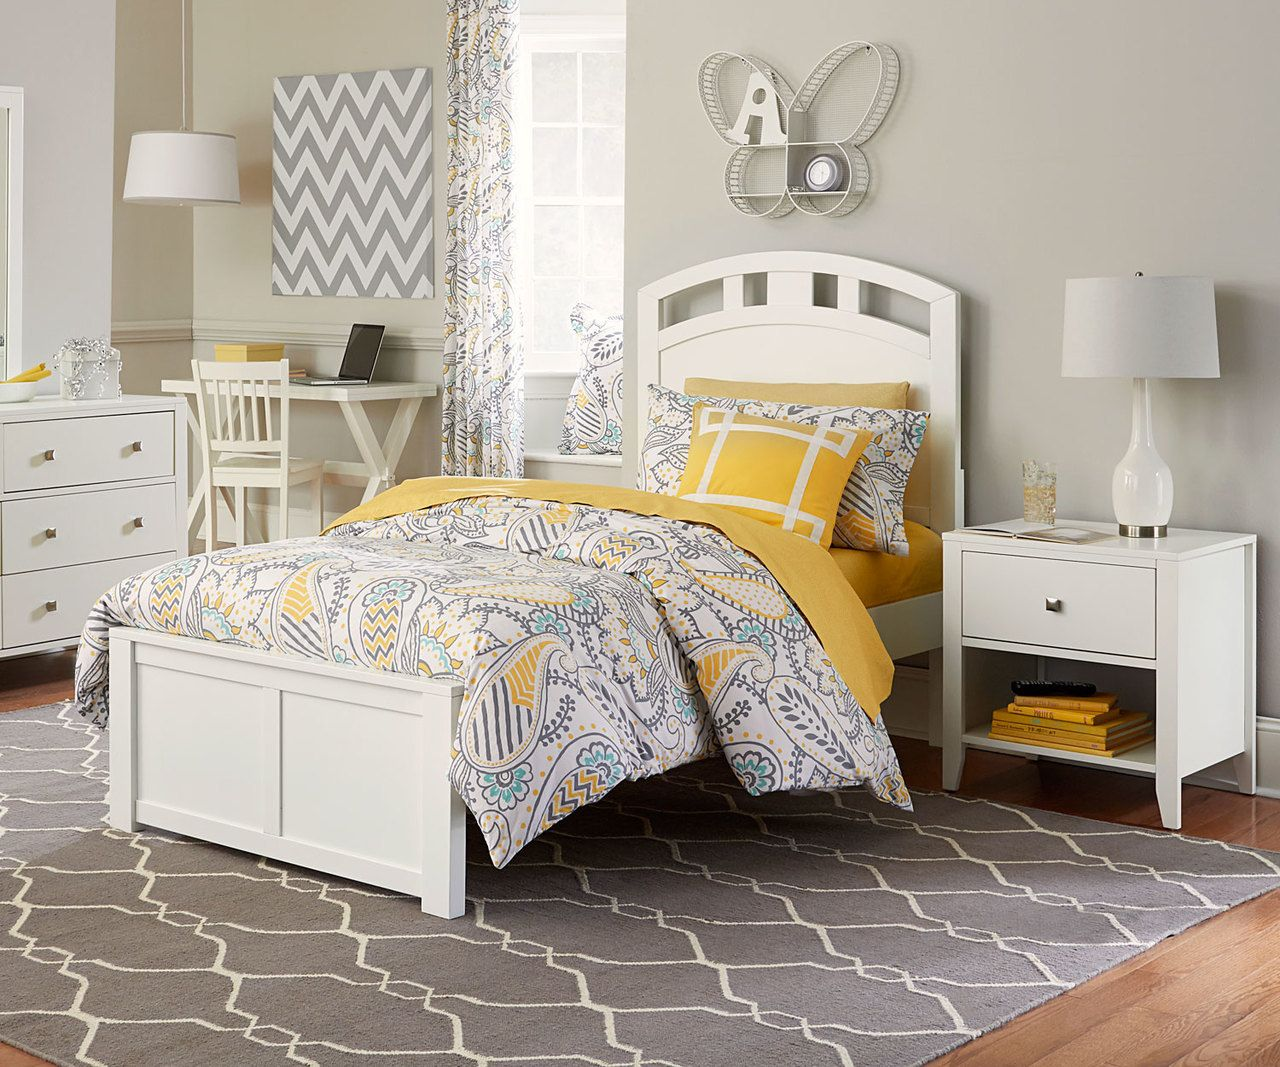 Urbana Platform Bed Twin Size White in 2019 Bed, Bed